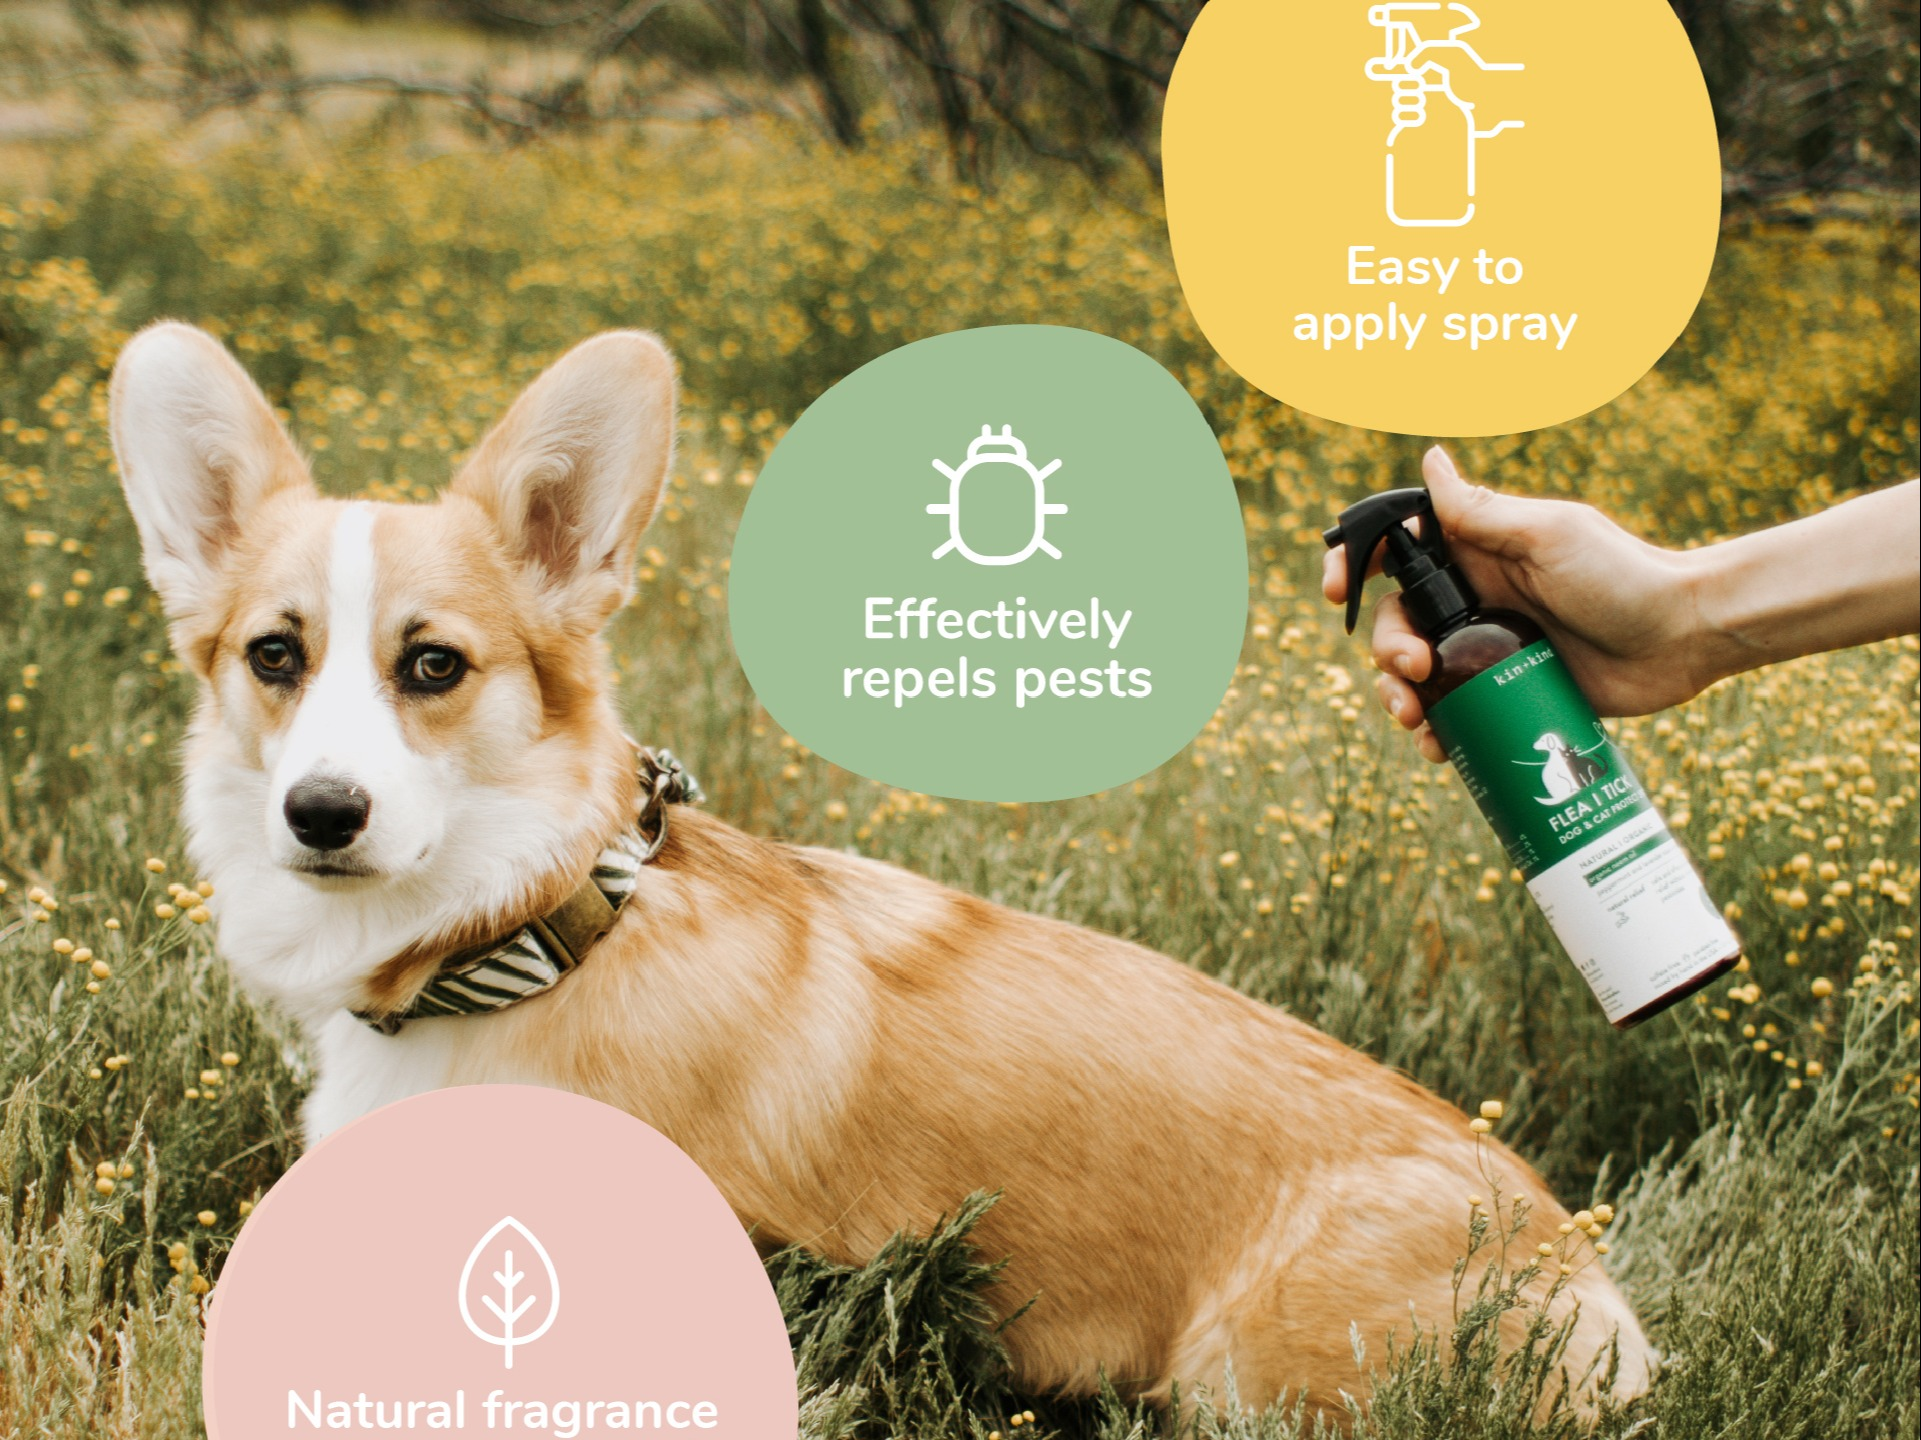 Image of corgi in grass getting sprayed with flea & tick spray